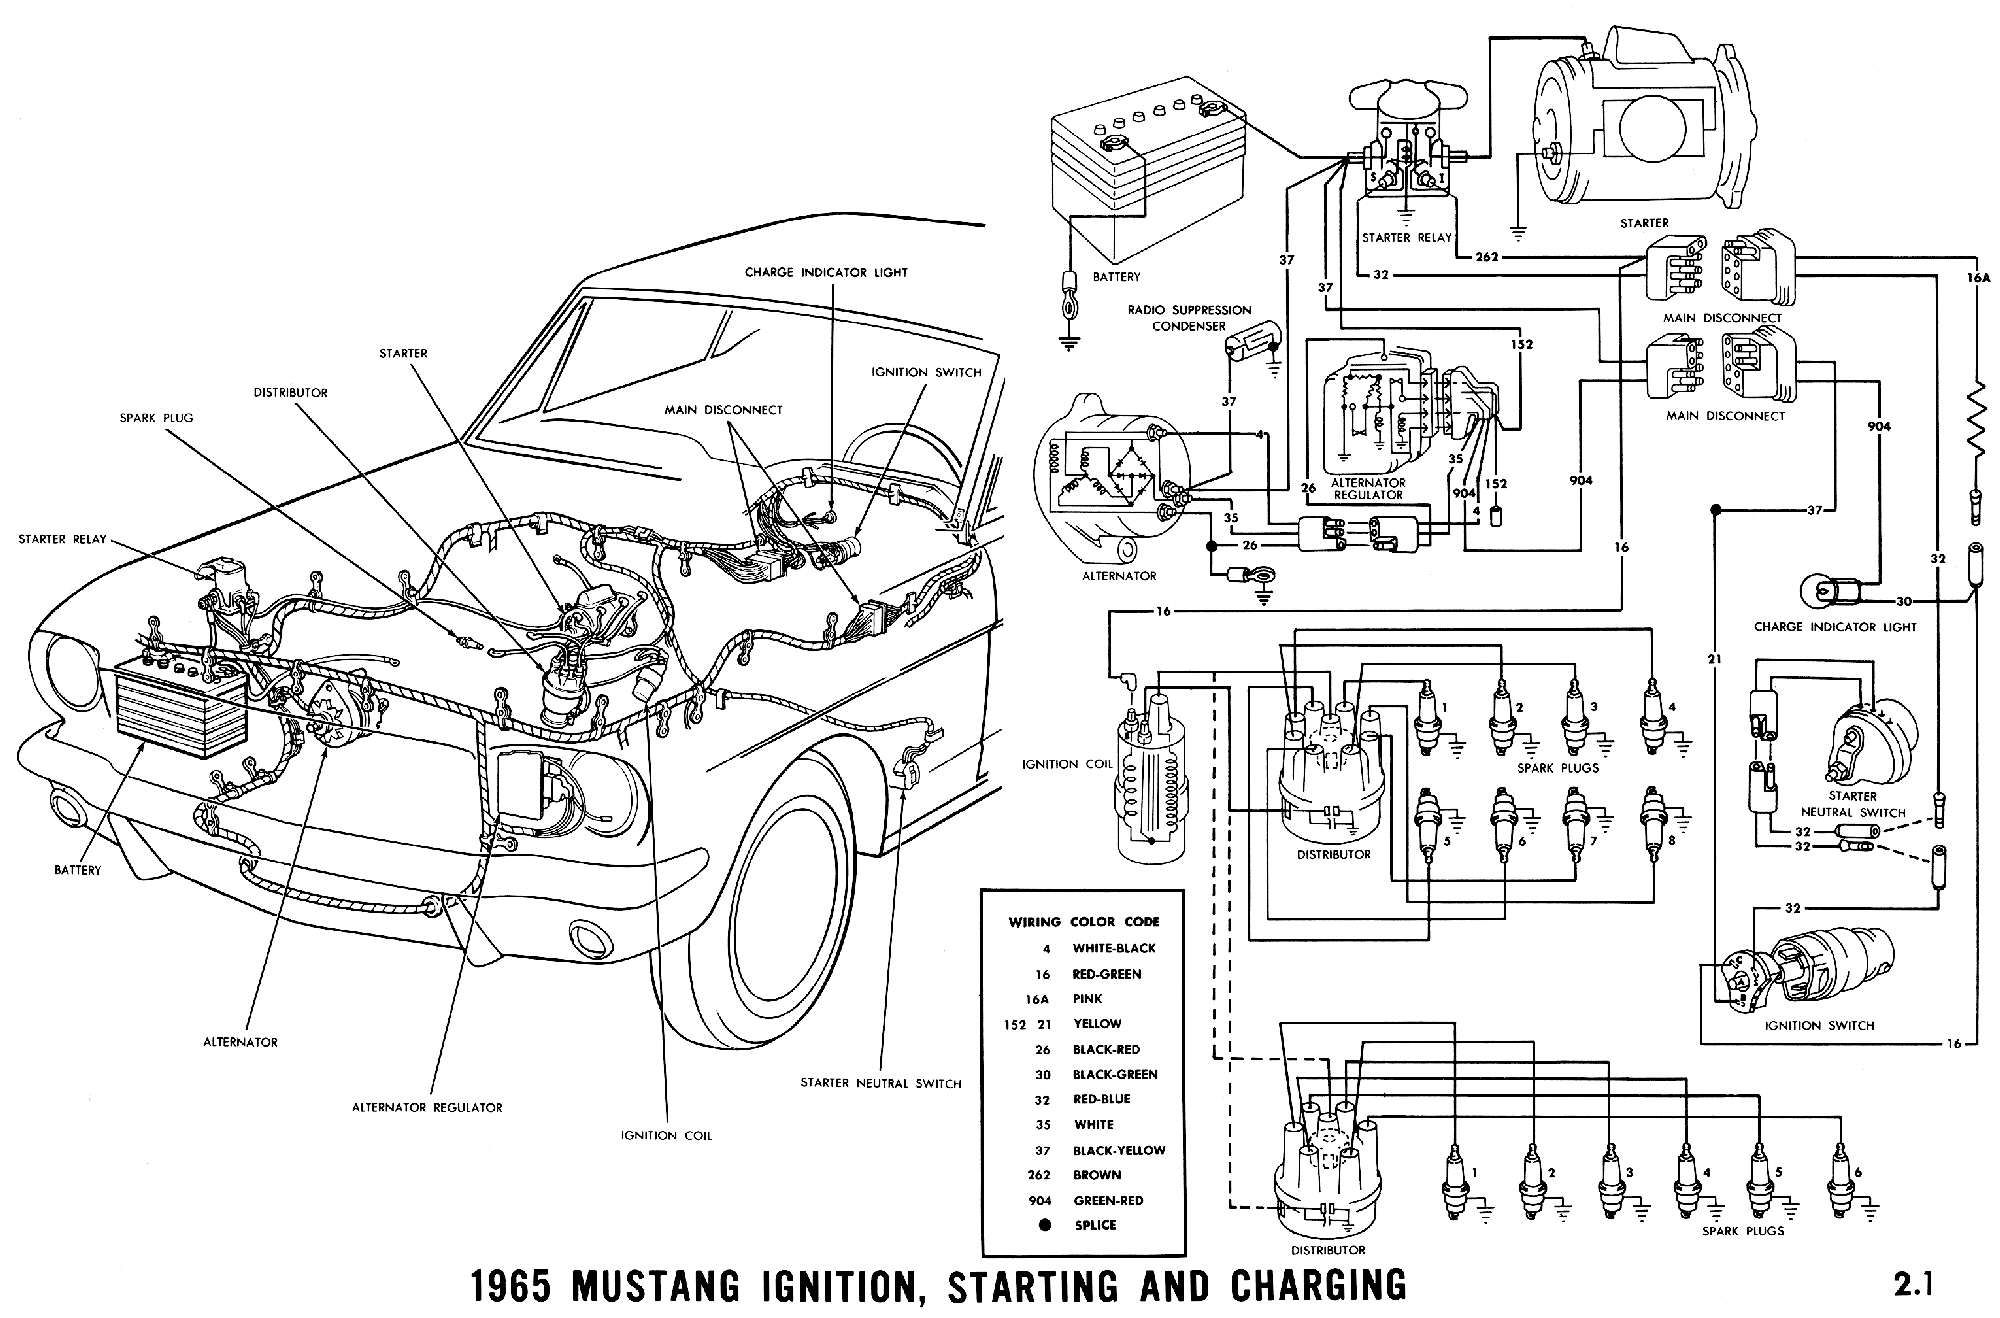 2b4c8d3809962afcbebfb7e8a60704ce 1965 mustang wiring diagrams average joe restoration mustang Ford Alternator Wiring Diagram at mifinder.co